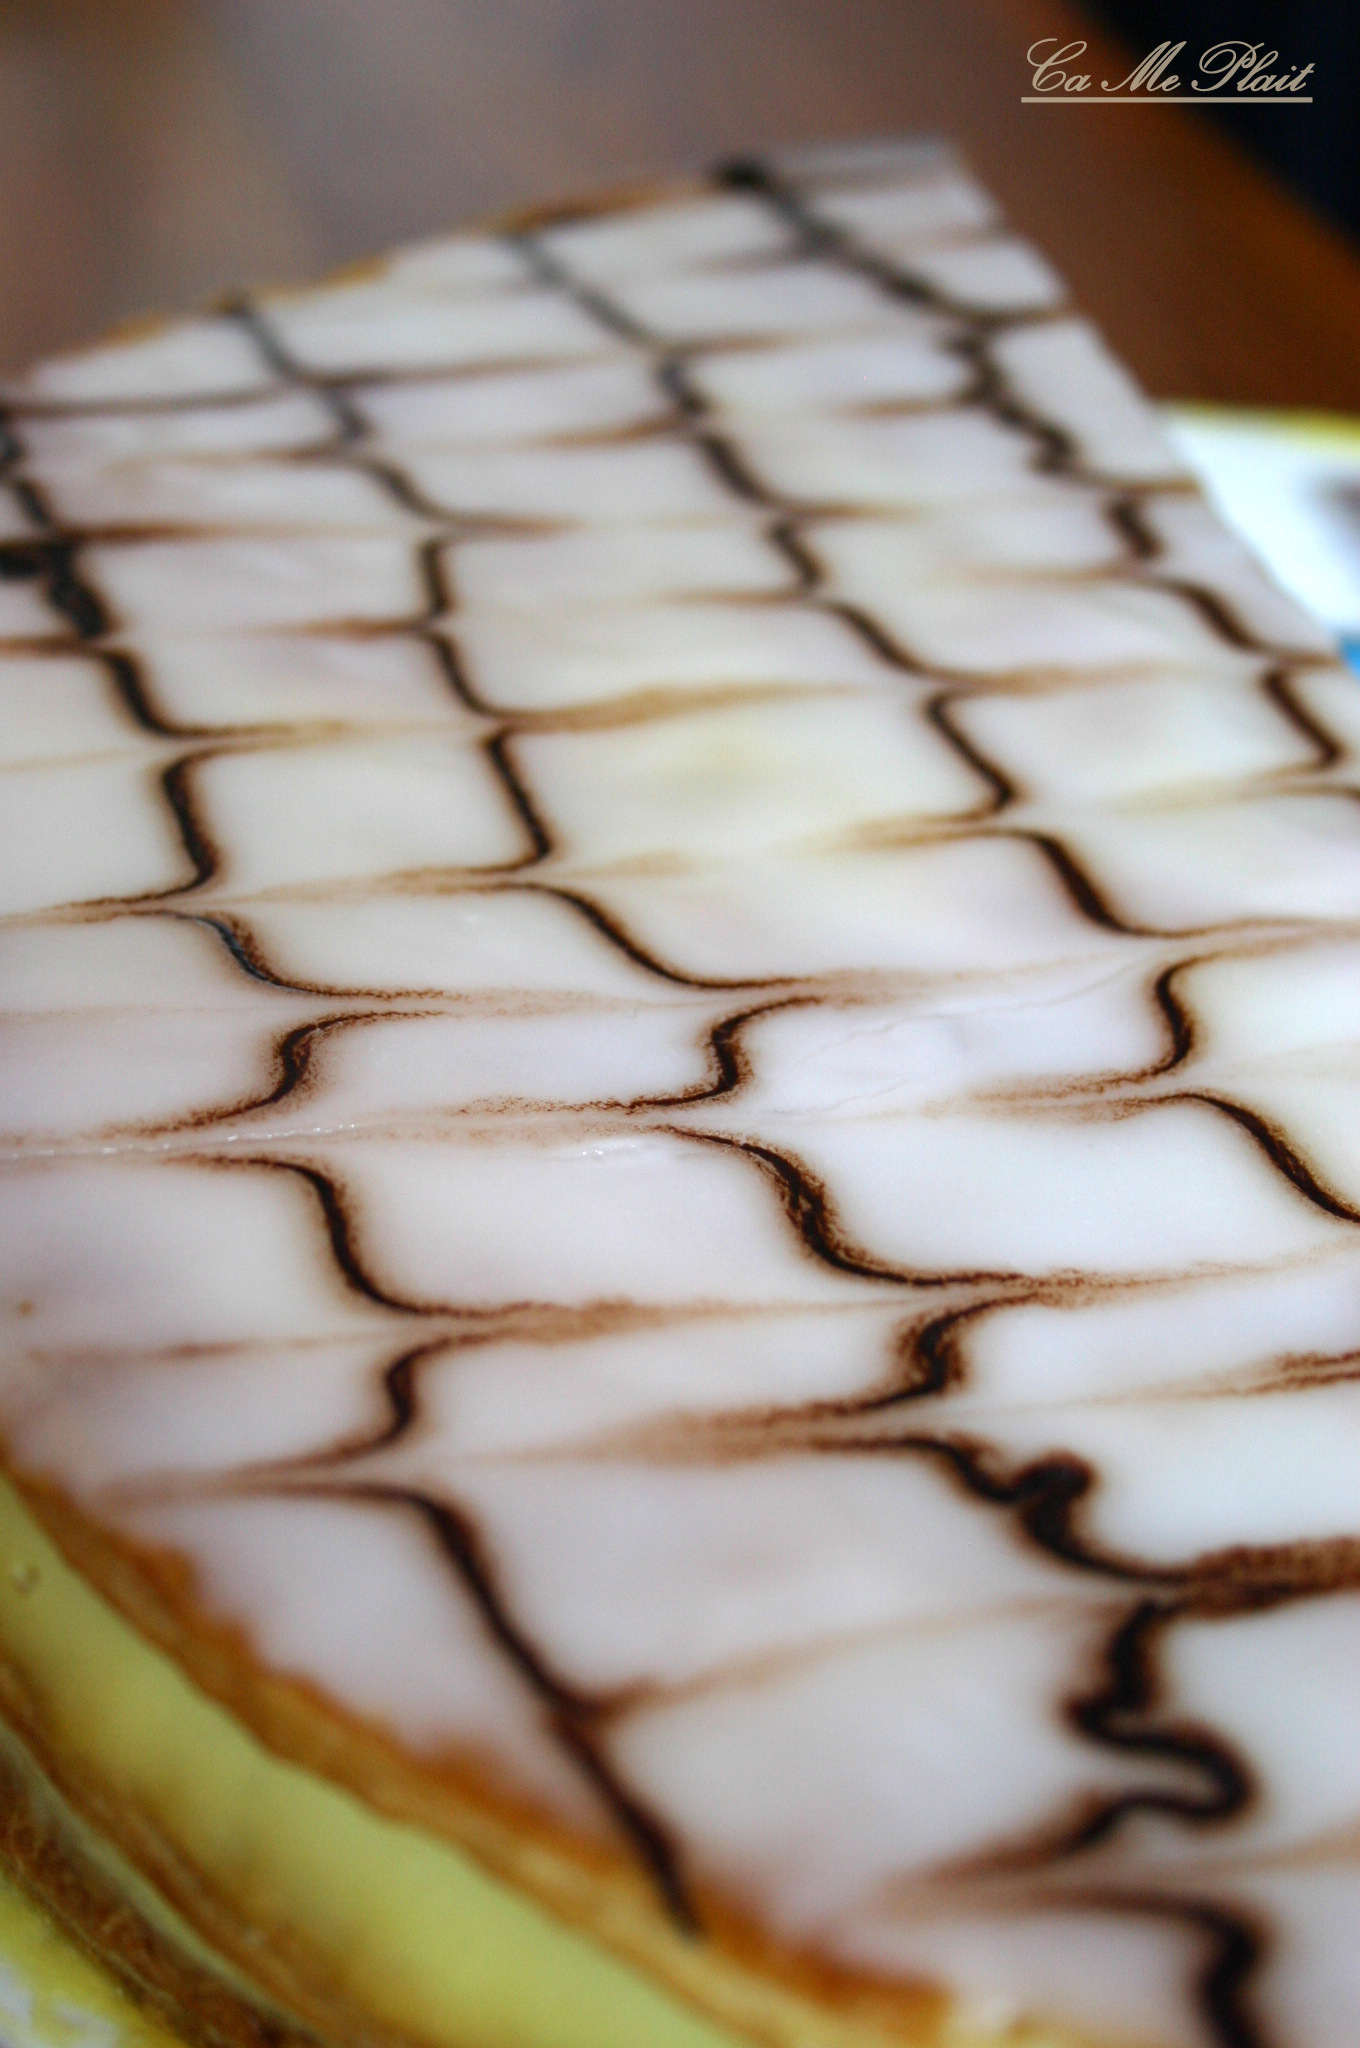 [PHOTO DU JOUR] #133 Mille-feuille maison